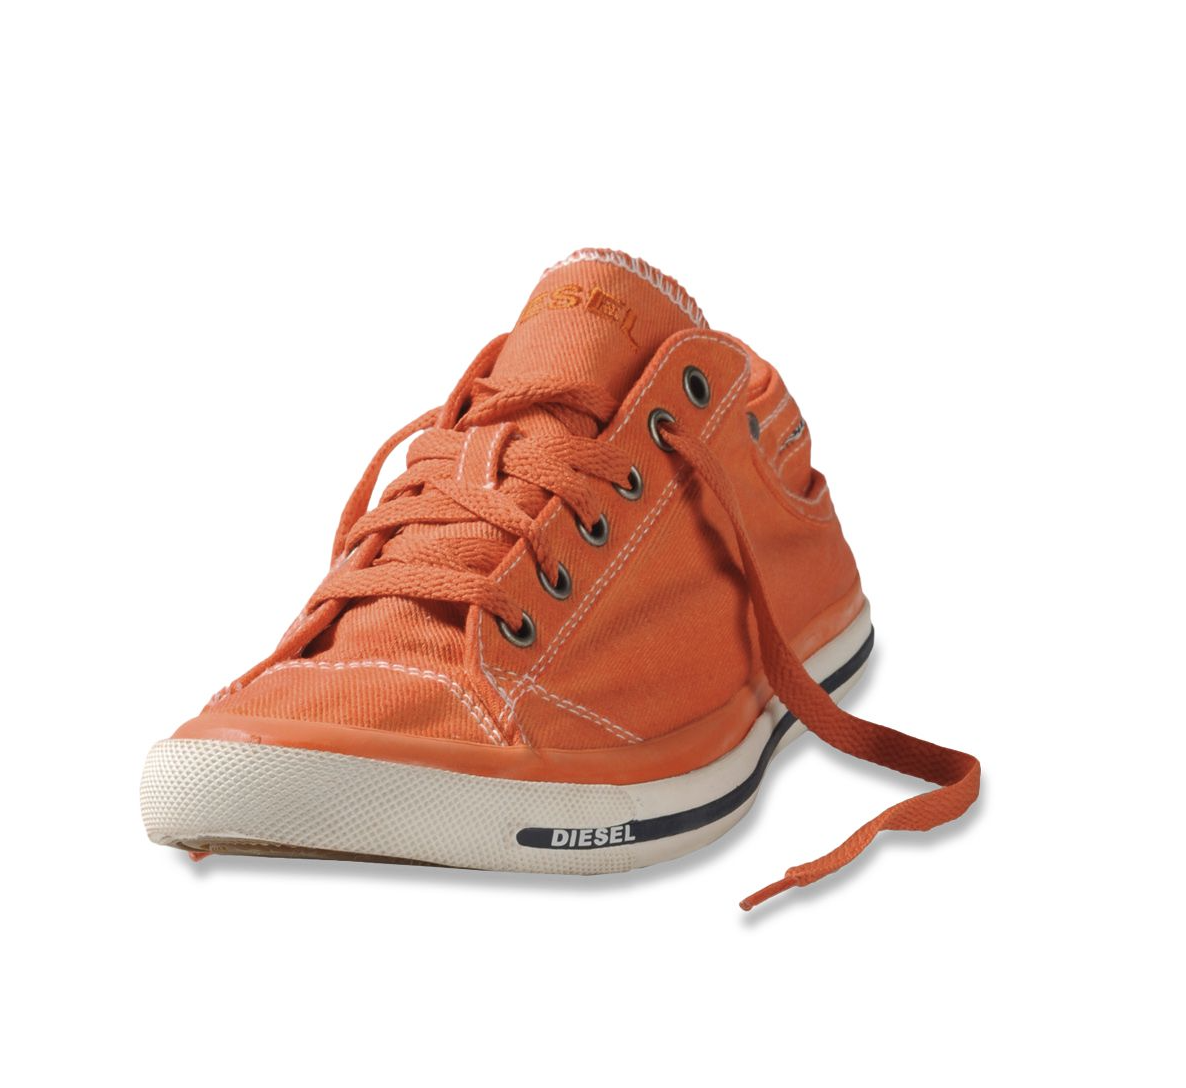 Diesel EXPOSURE LOW CASUAL SHOE AW 15 Orange Carrot